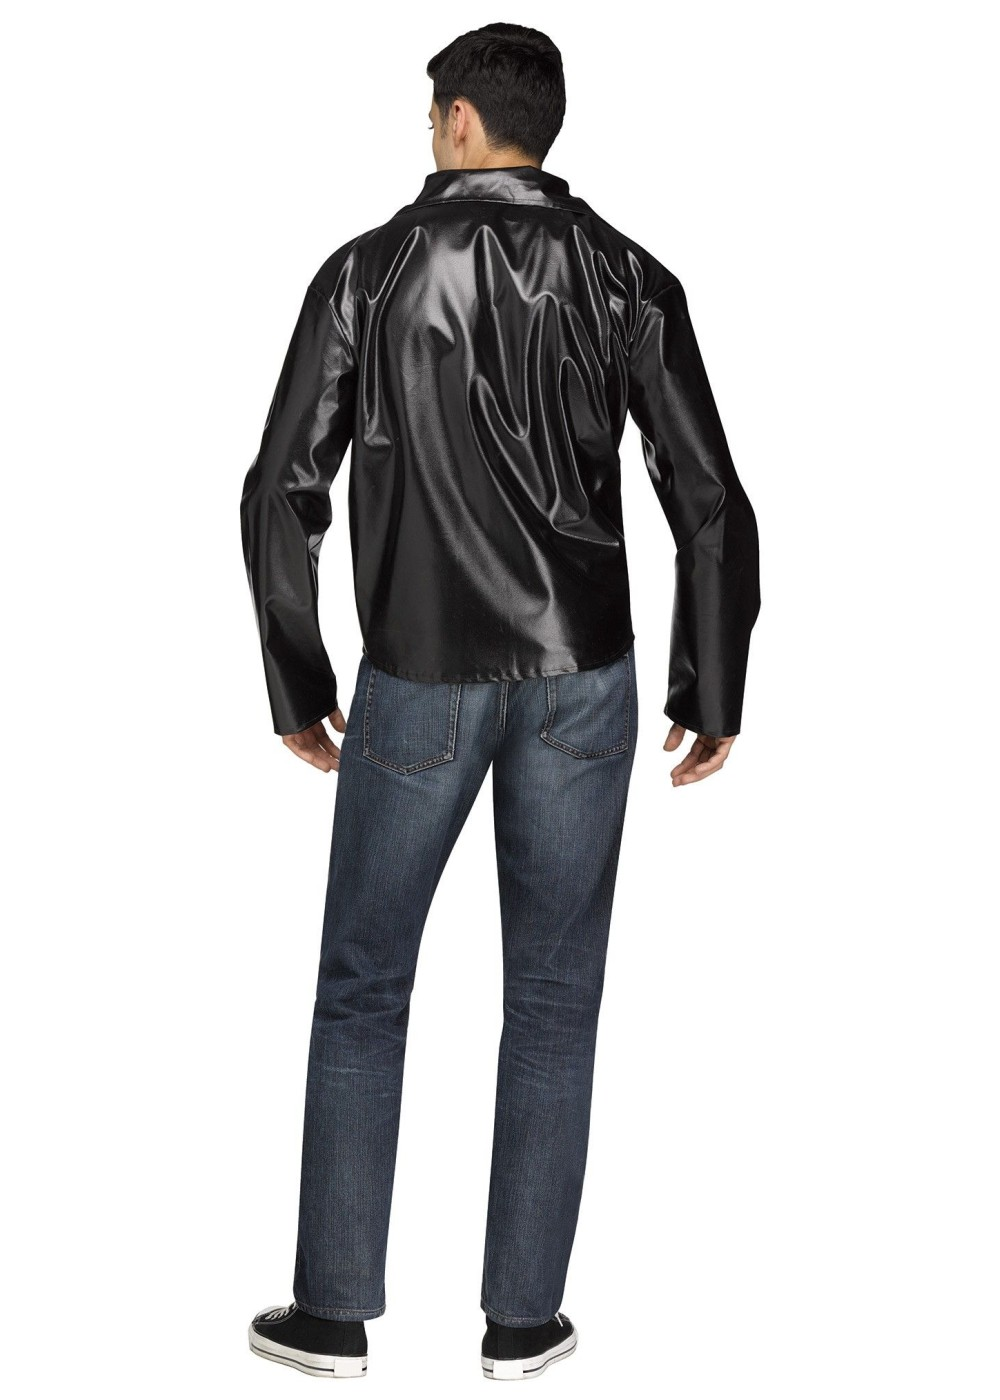 50s Biker Jacket Men Costume 1950s Costumes